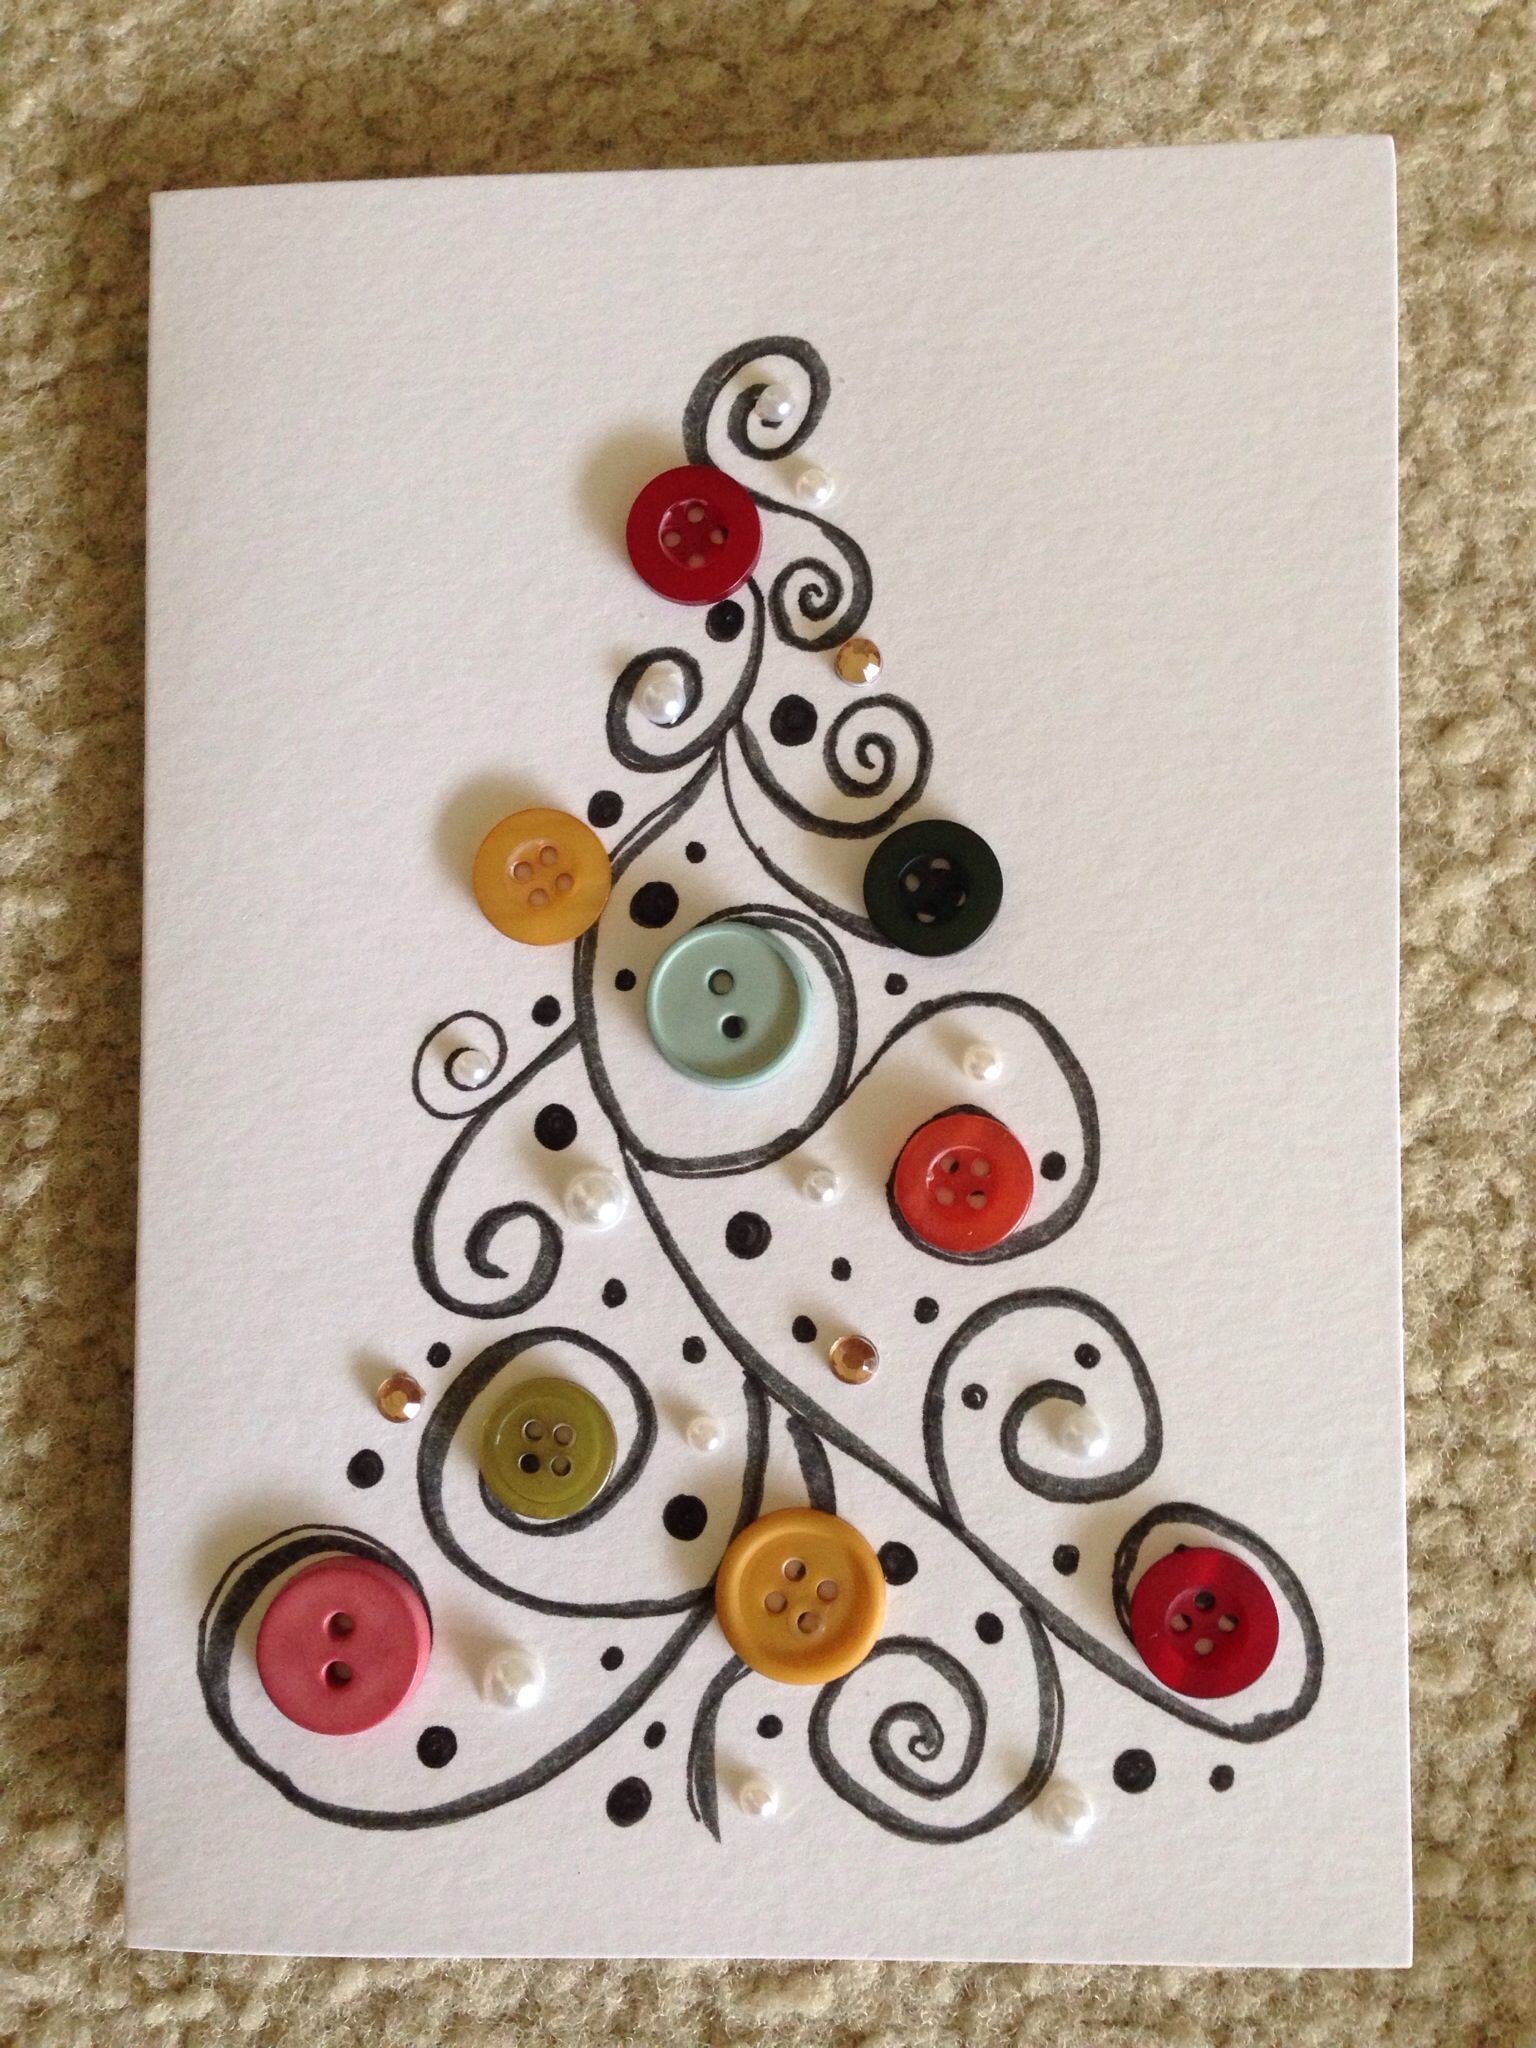 Buttons Christmas Card Cute As A Button Pinterest Navidad  ~ Postales Navideñas Originales Manualidades